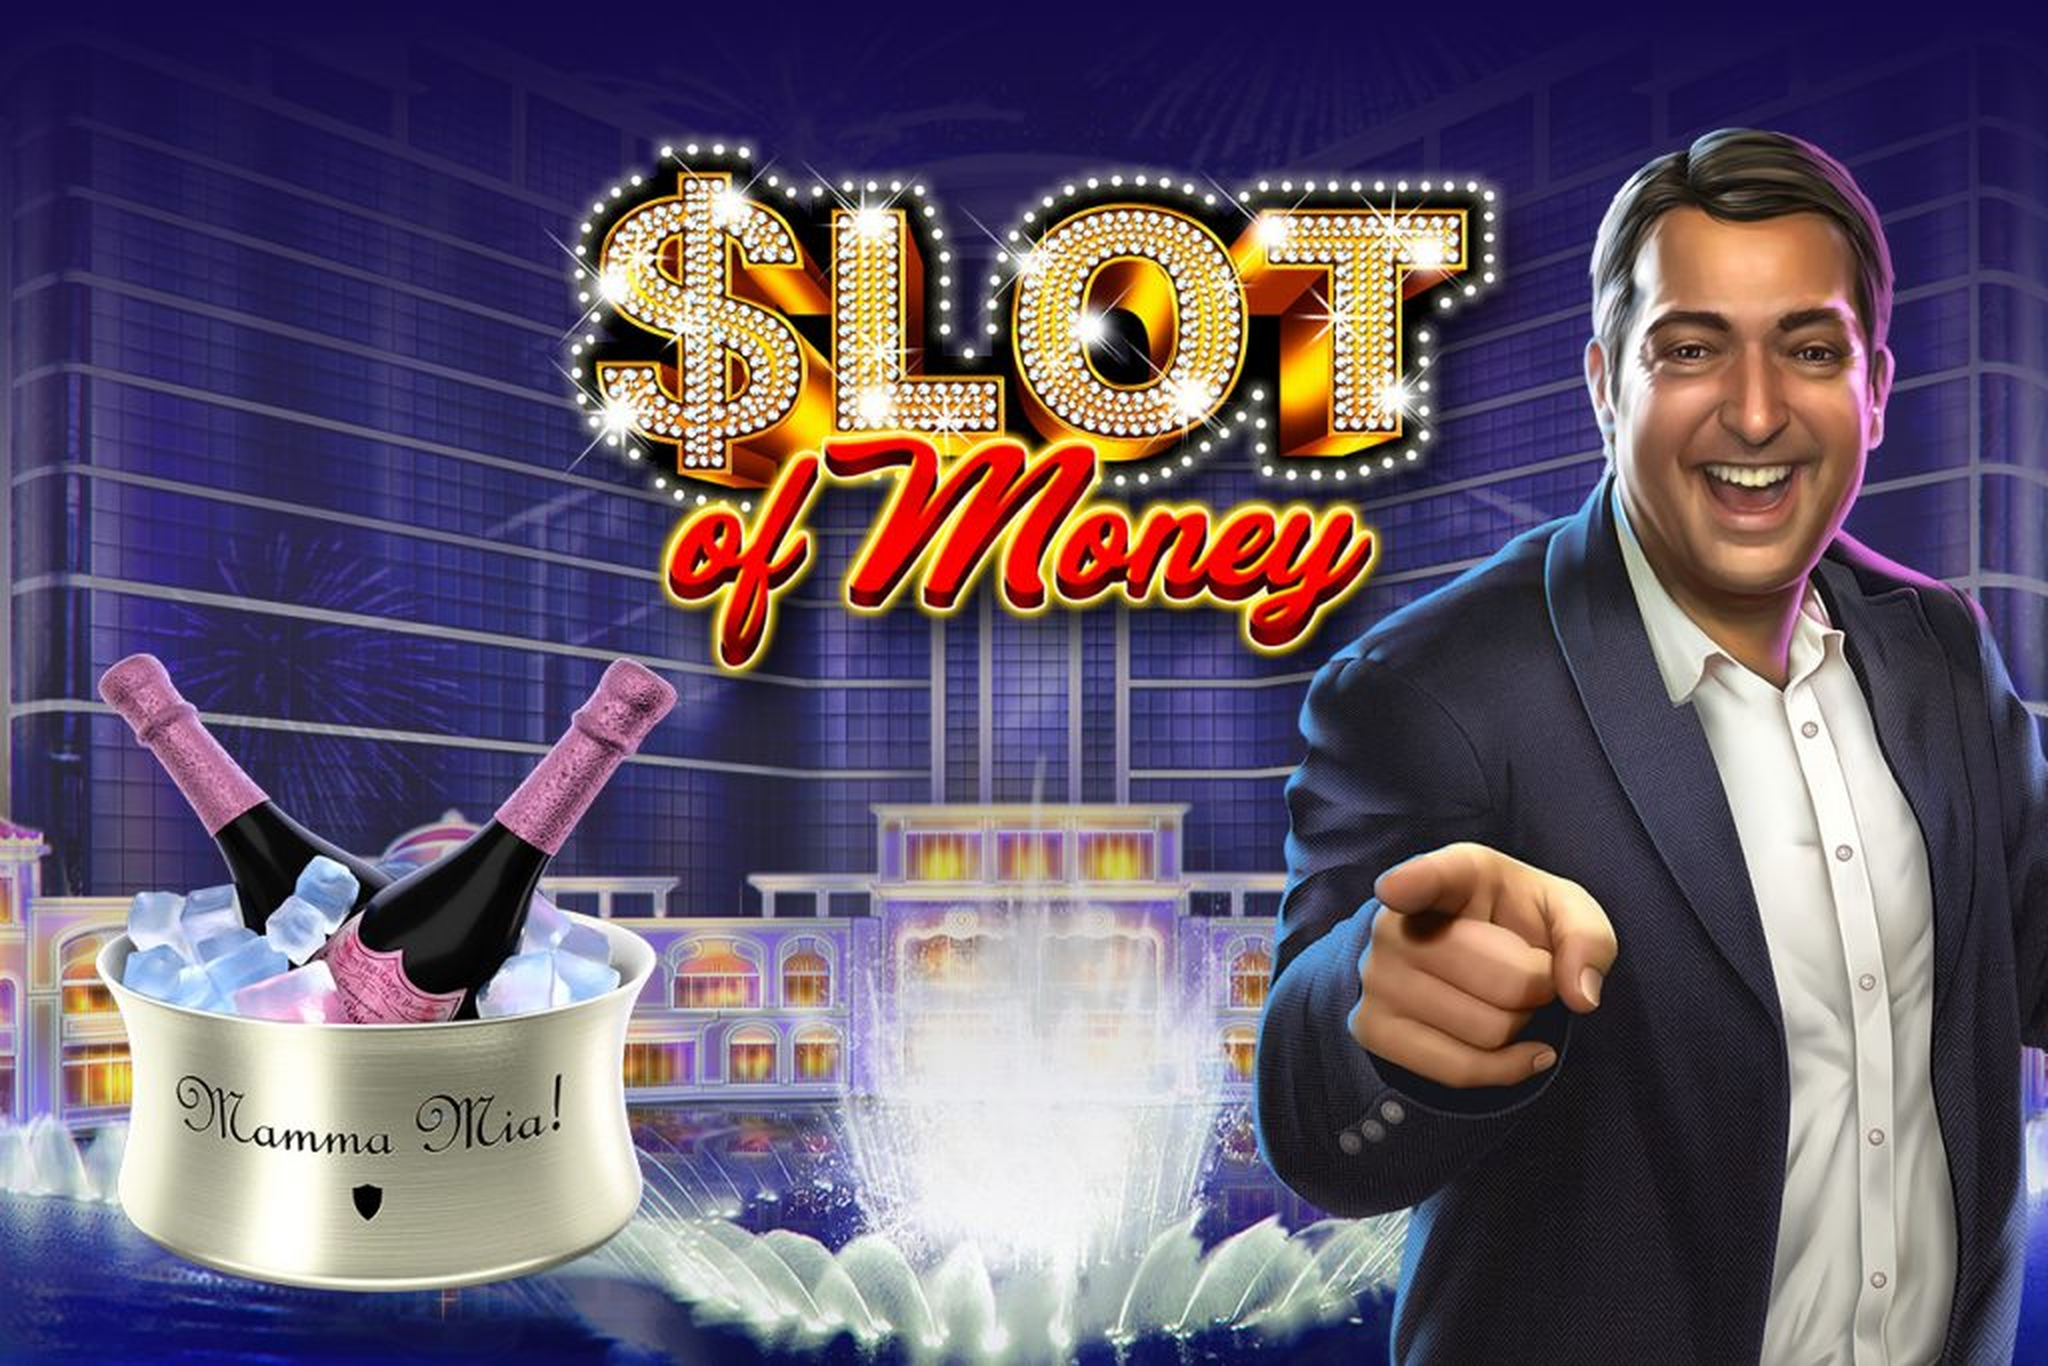 The Slot Of Money Online Slot Demo Game by GameArt